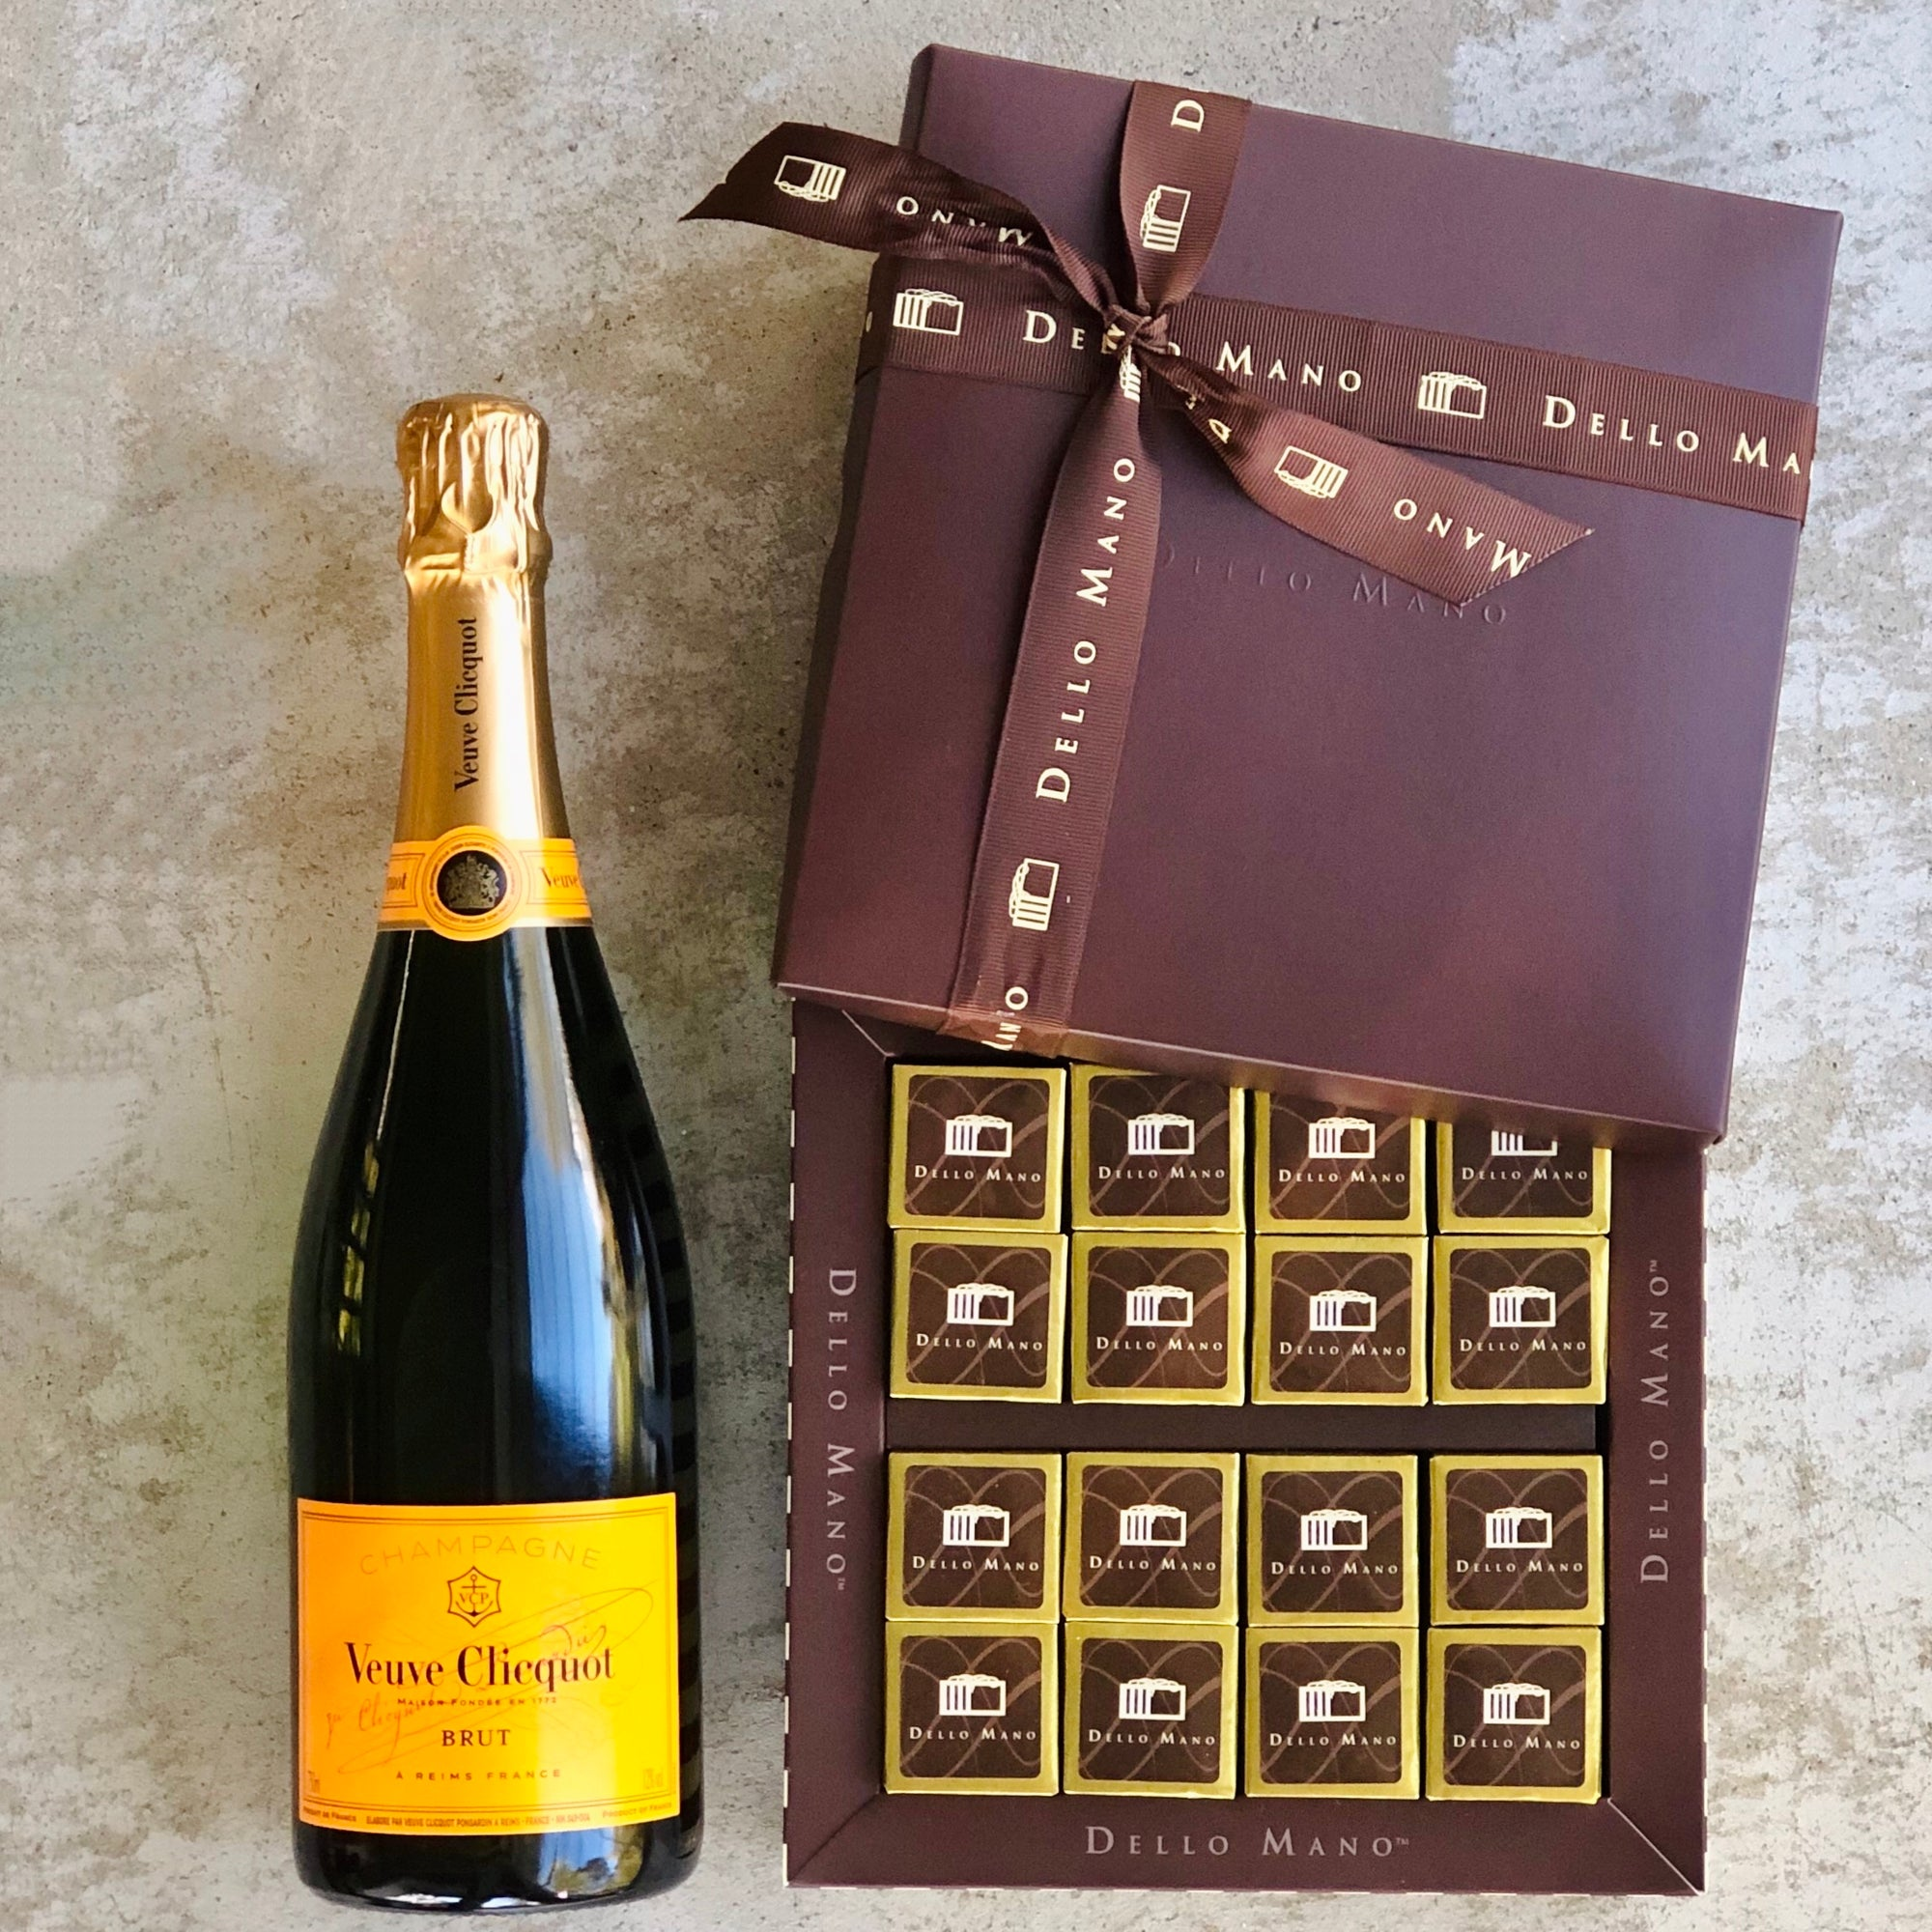 A bubbles and brownie hamper with one bottle of veuve clicquot champagne and box of brownies